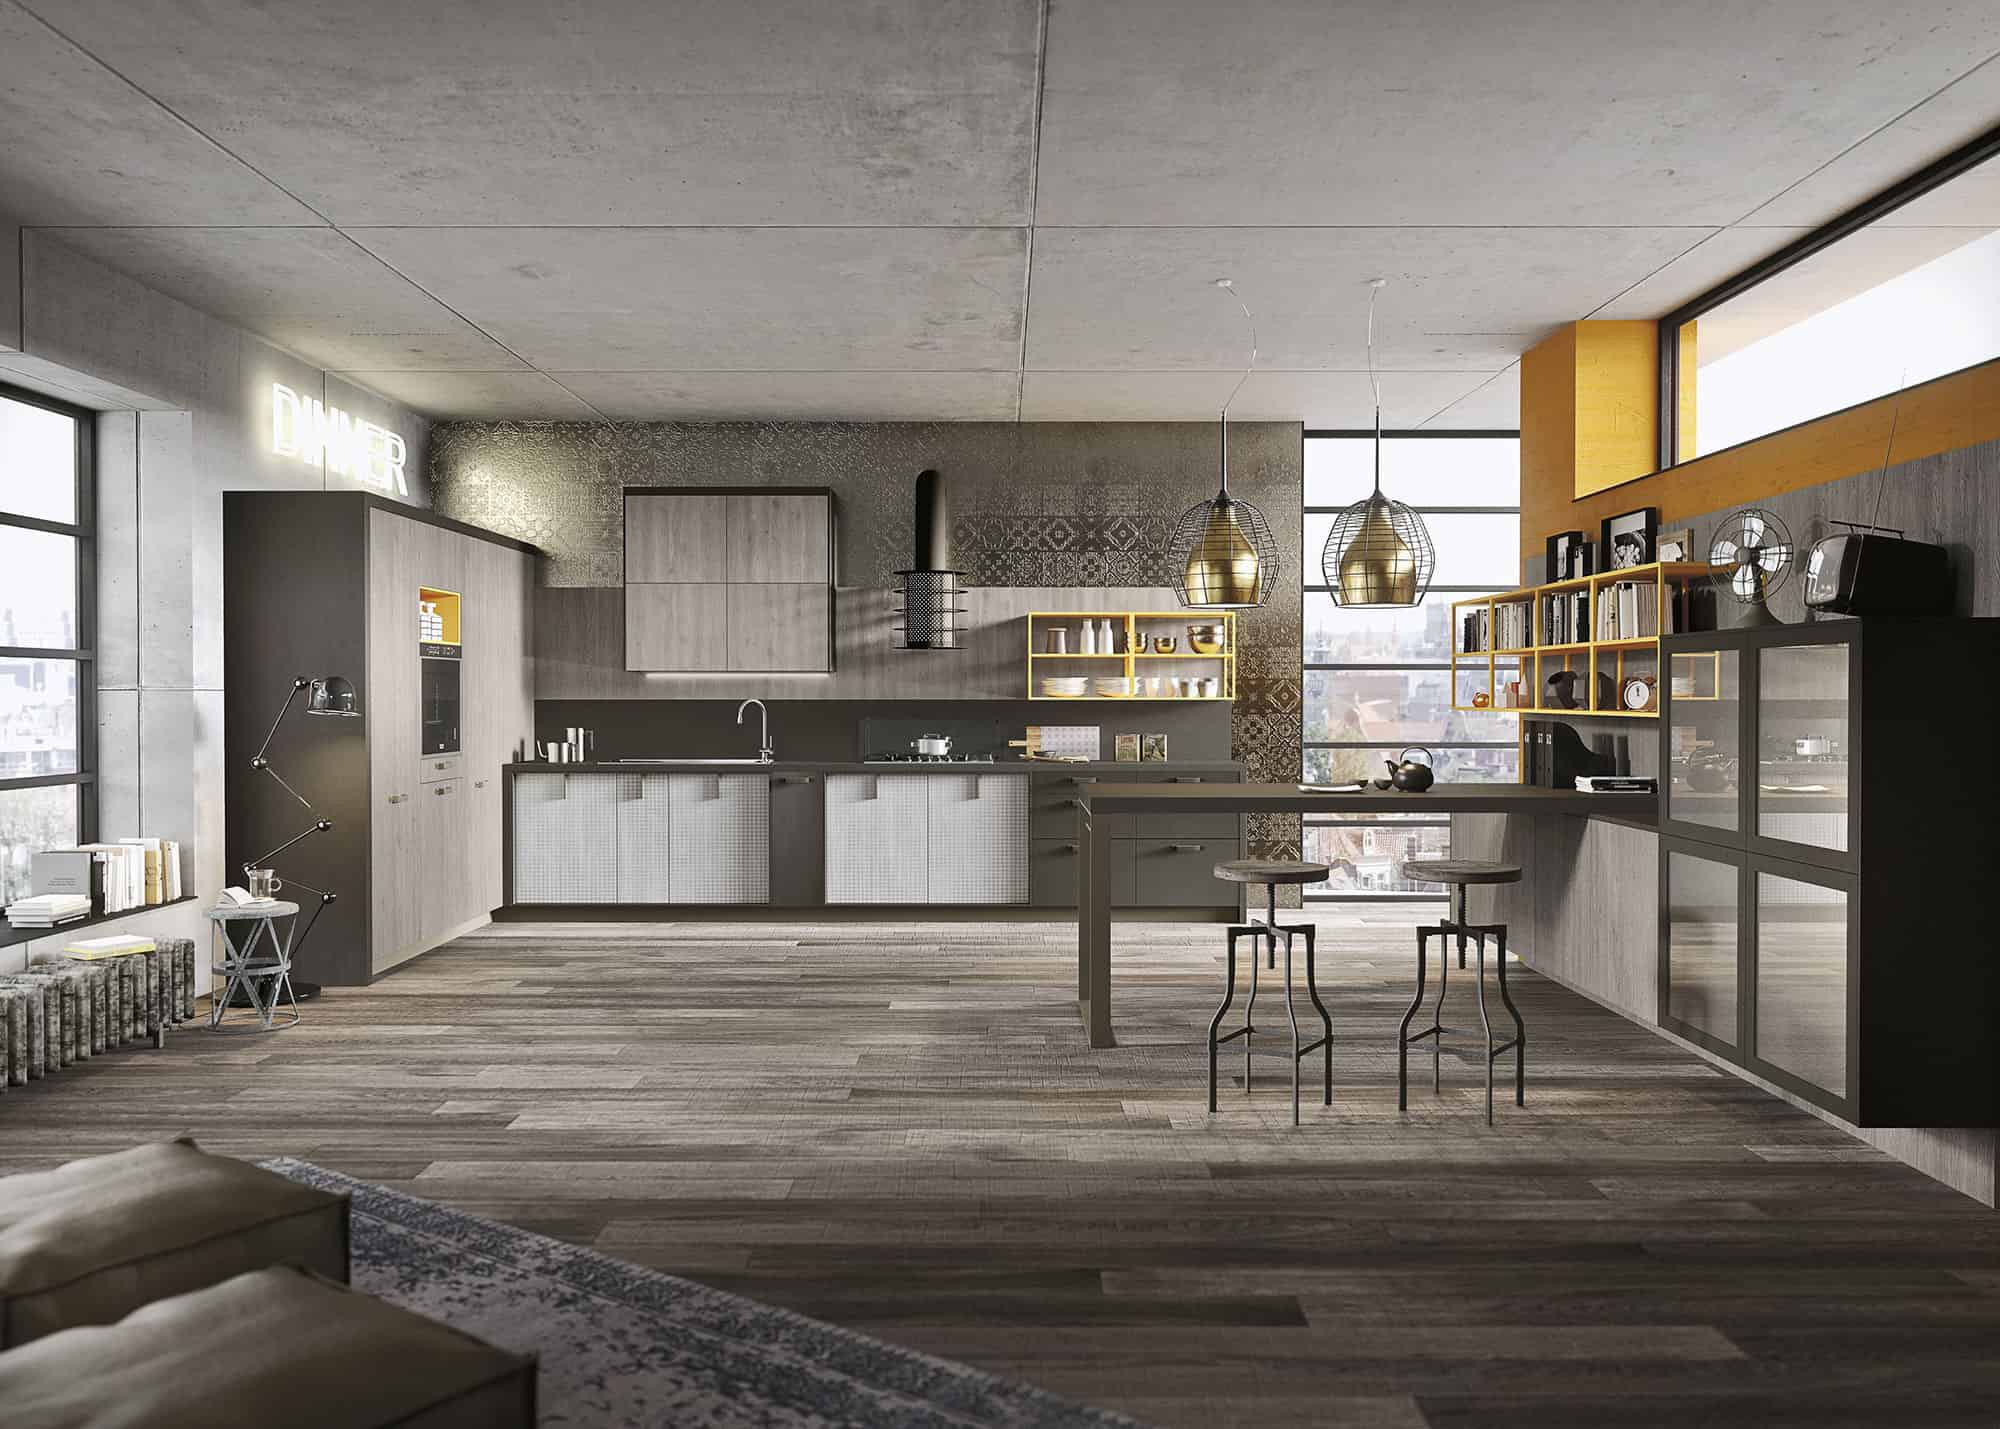 Captivating This Urban Loft Kitchen Design (above) Uses The Same Elements As The One  With The Modern Look But It Features The Weathered Looking U201cFossil Oaku201d  Melamine ... Amazing Pictures